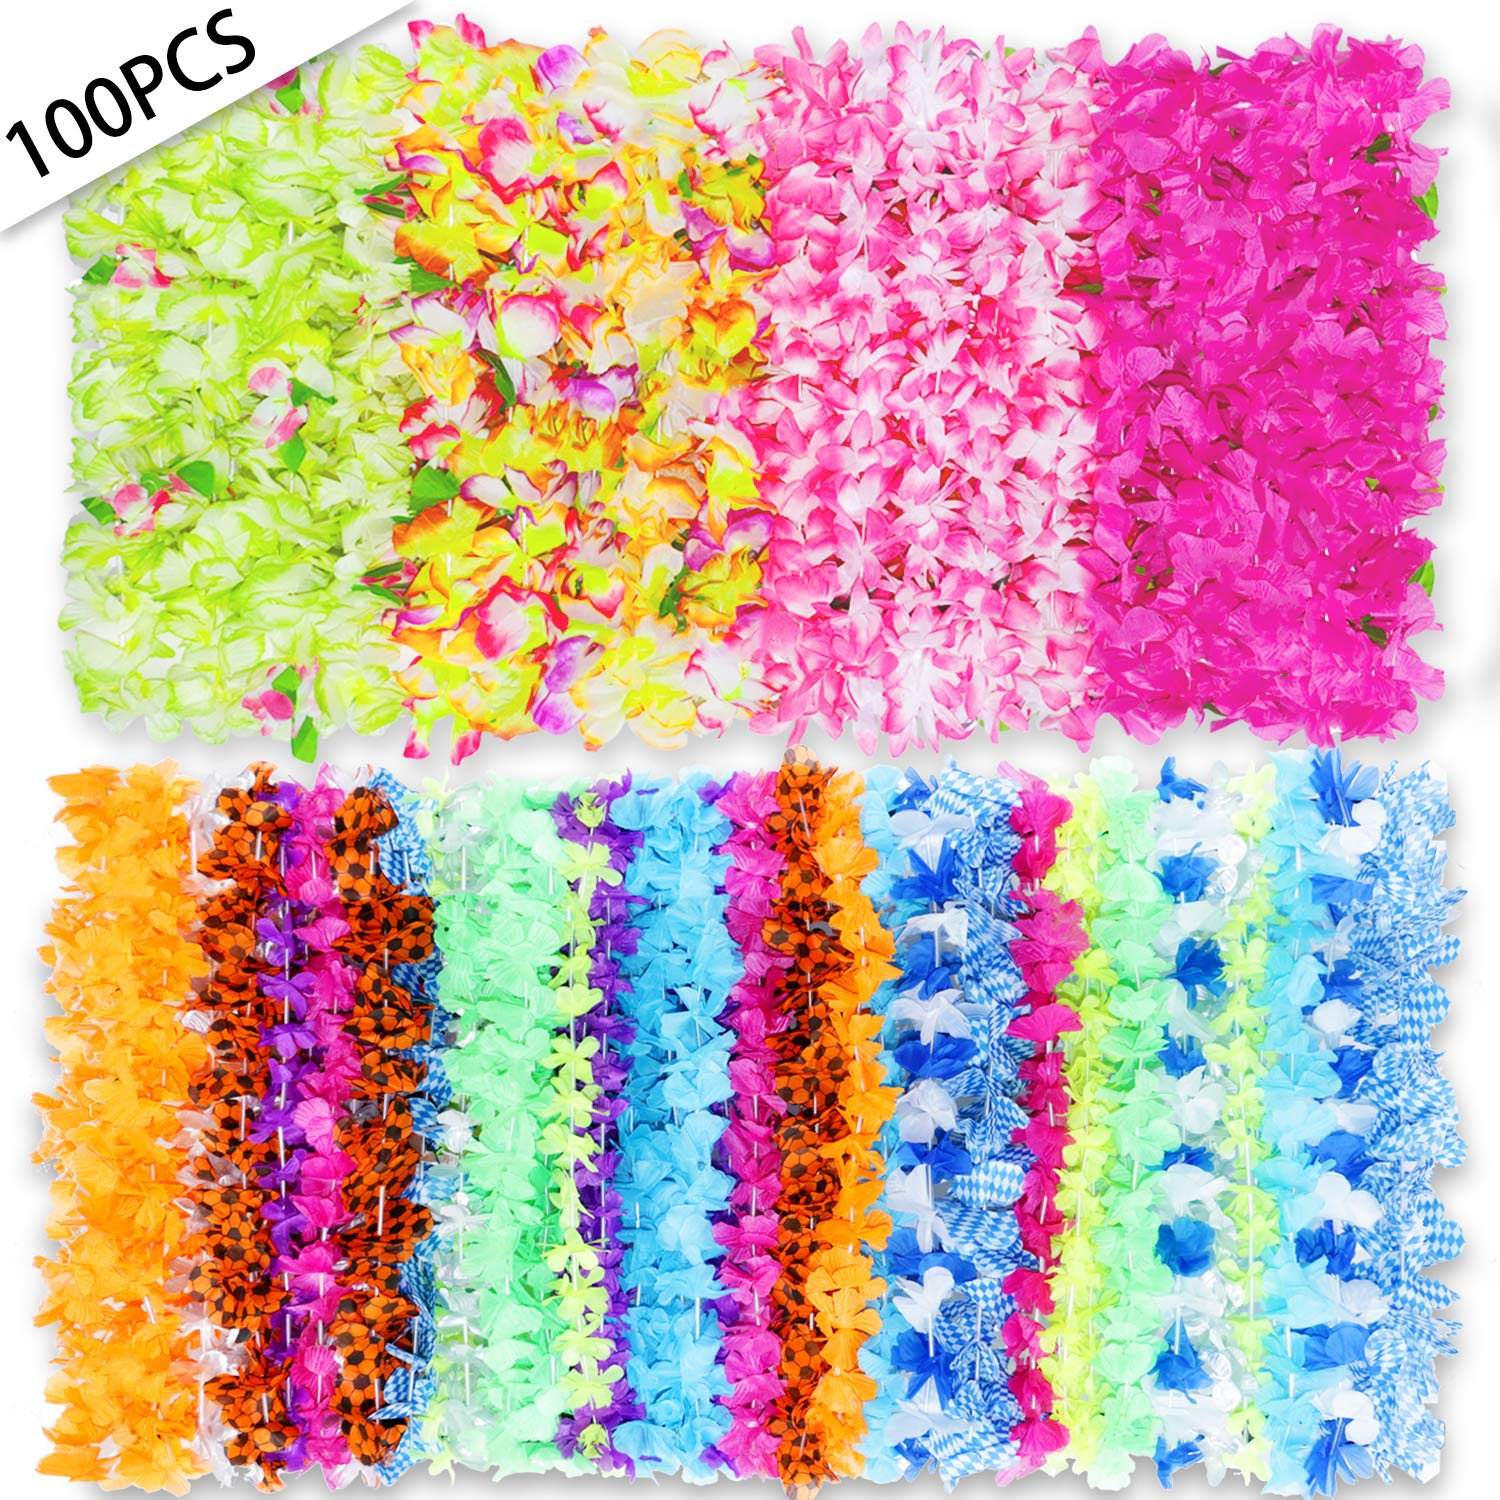 PARTYMASTER Hawaiian Leis Bulk Party Favors,100 Pack Multi Colorful Tropical Floral Necklace Leis for Luau Party and Wedding